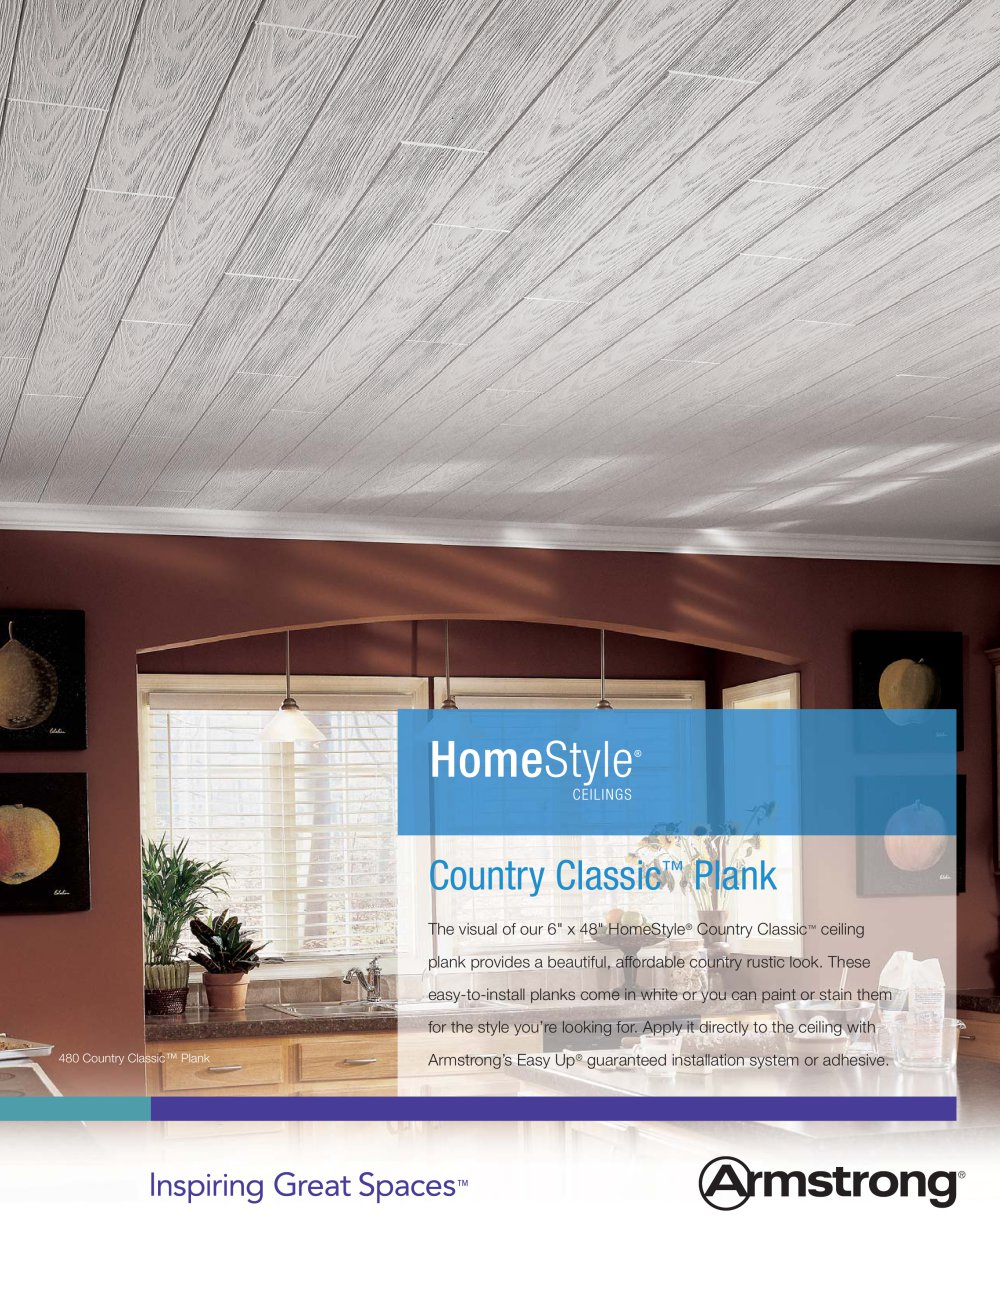 Homestyle Country Classic Ceiling Planks 1 2 Pages